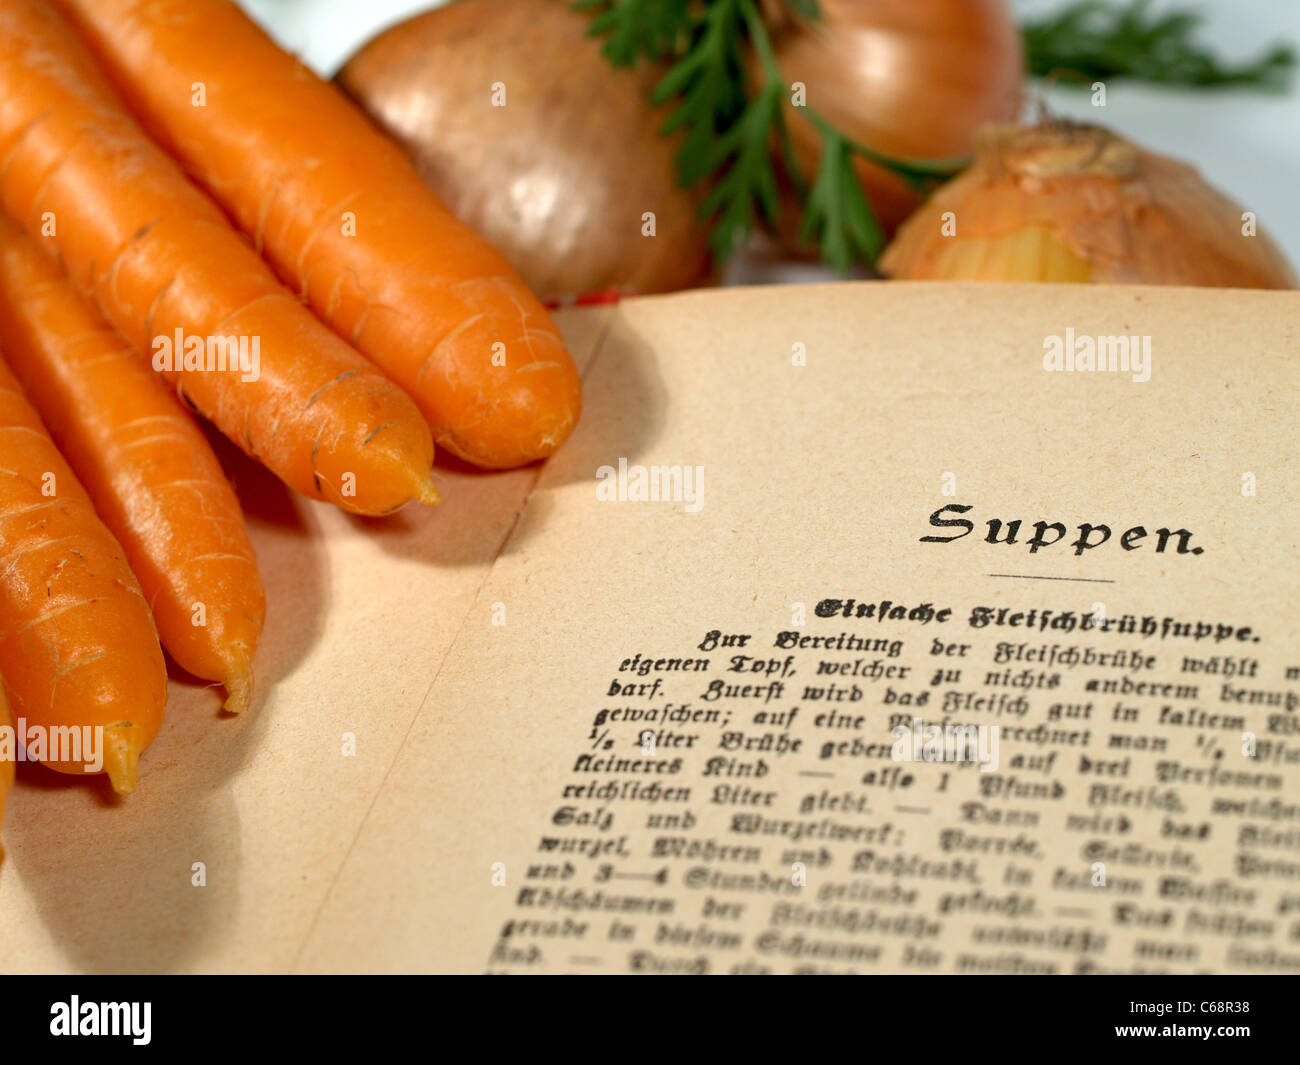 an old German cookbook side by side with carrots and onions - Stock Image